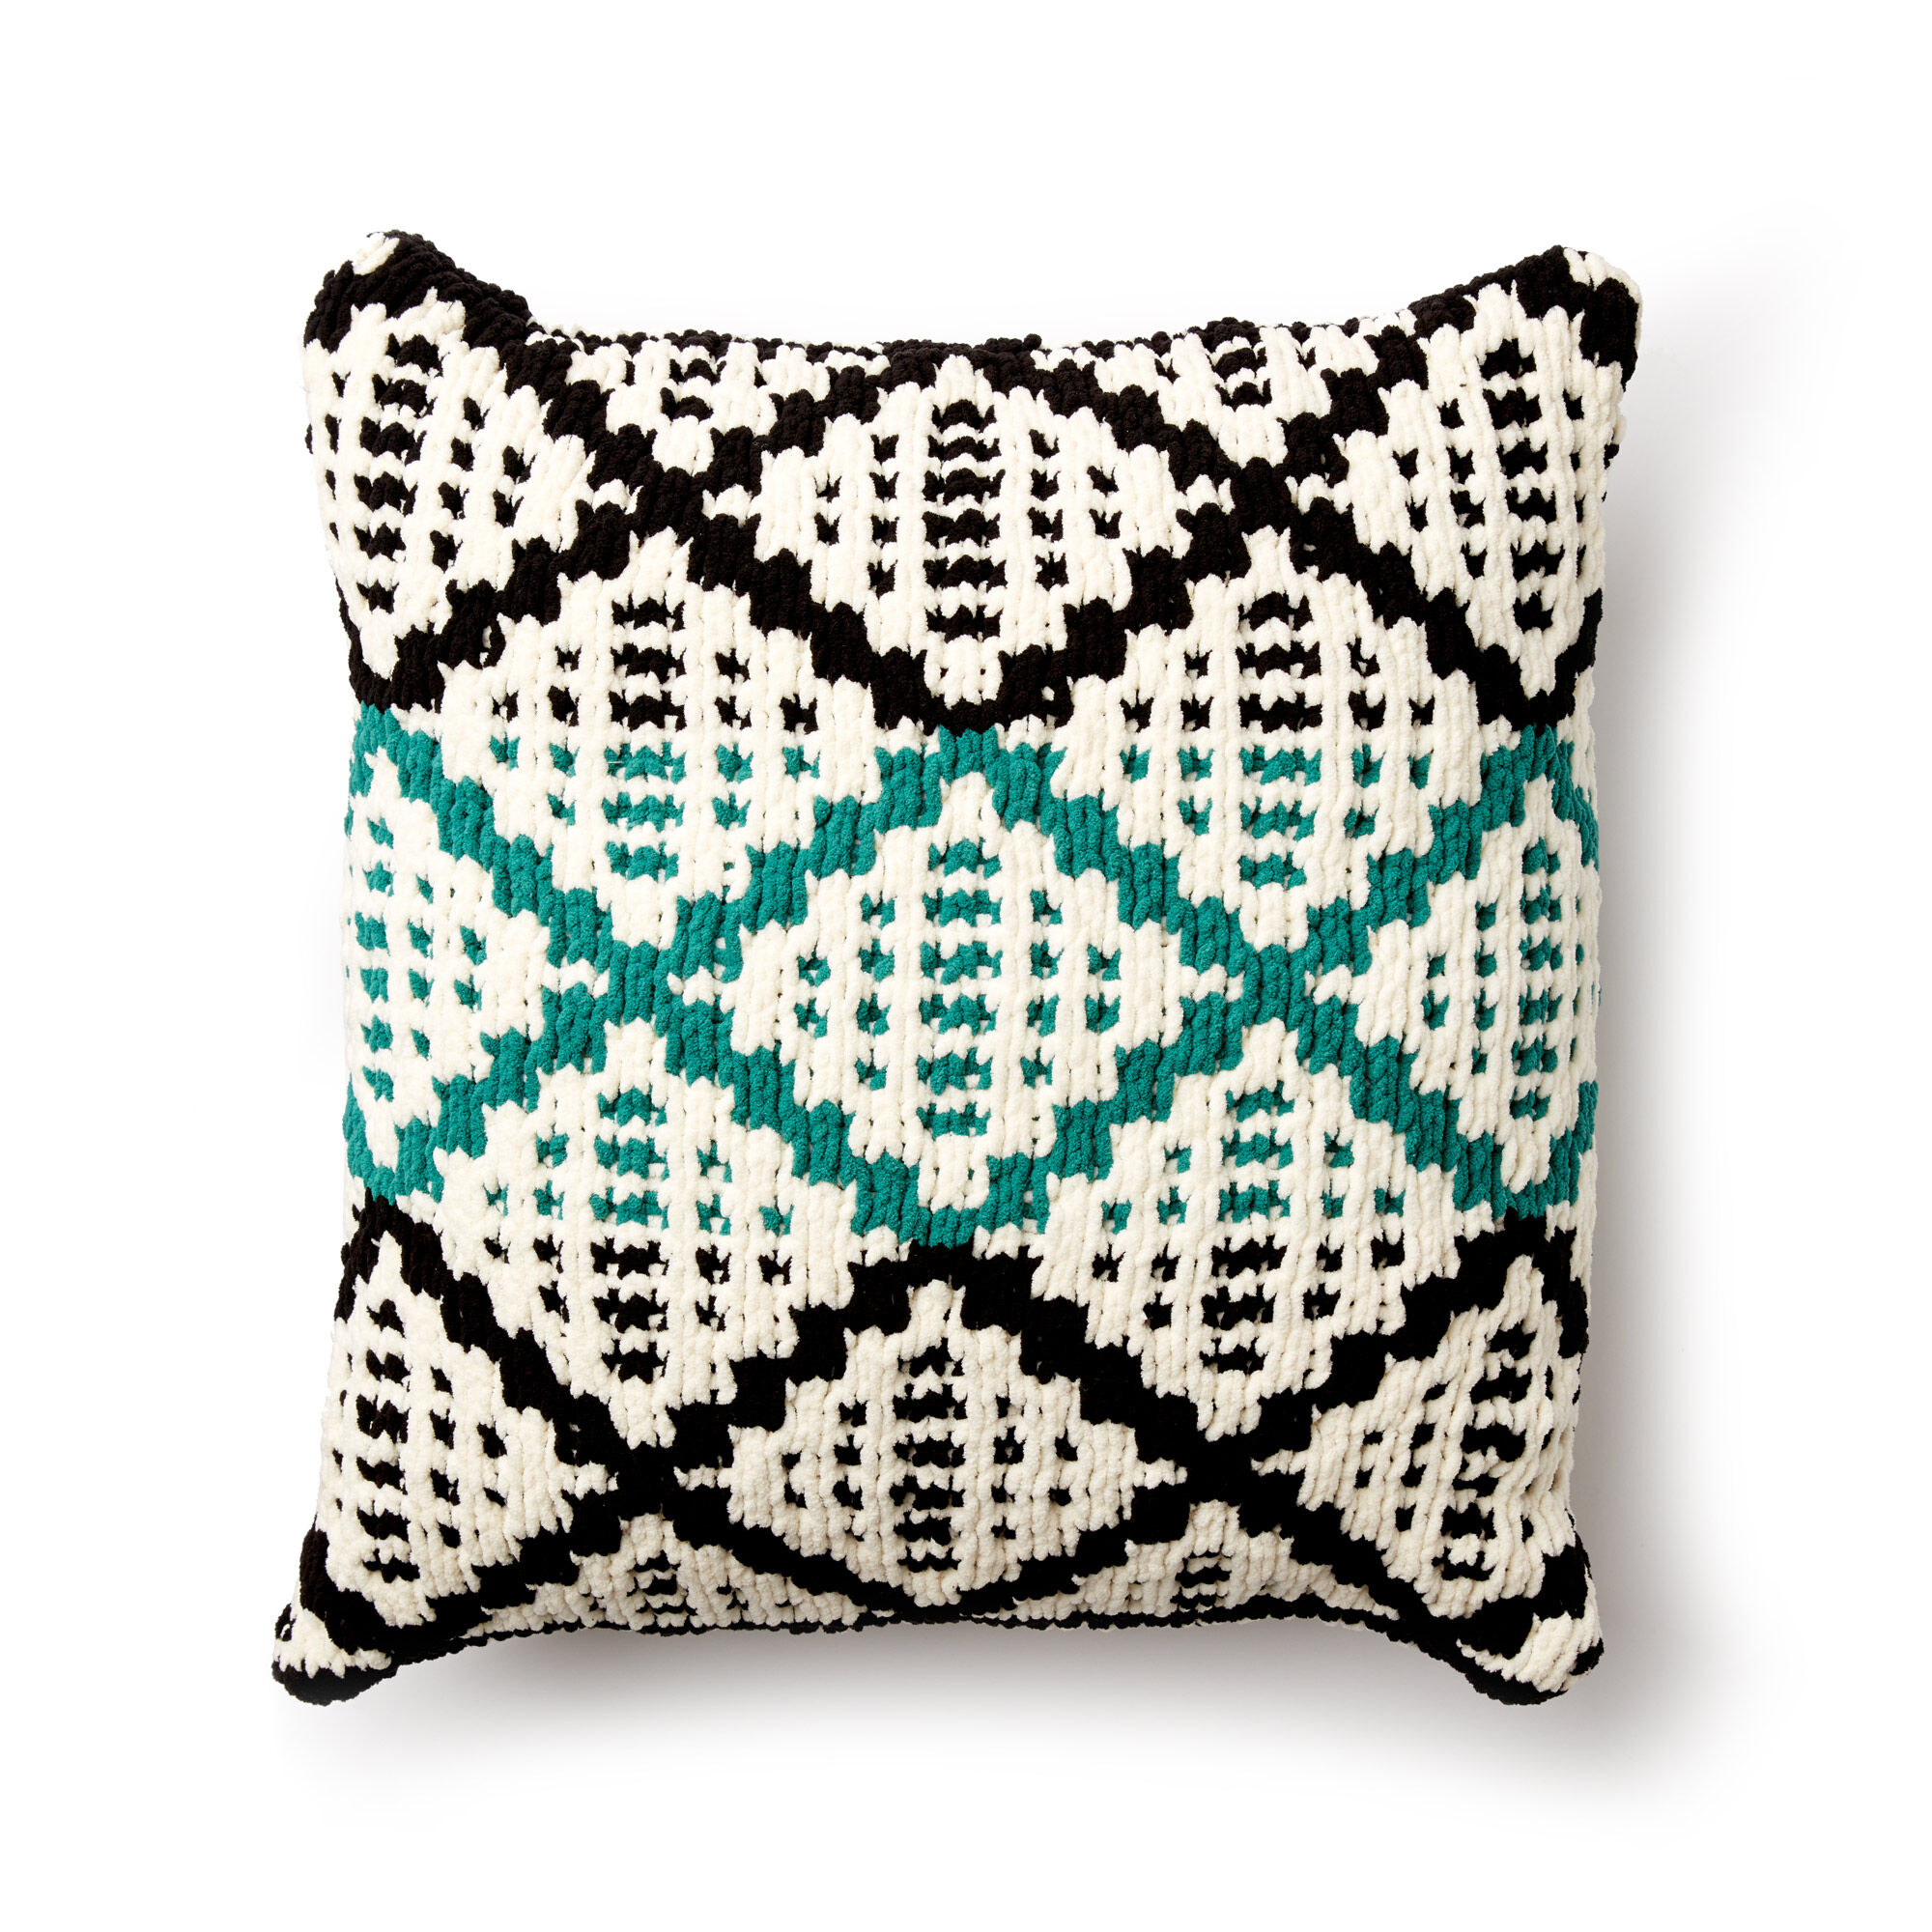 Diamond slip stitch pattern on plush cushion.